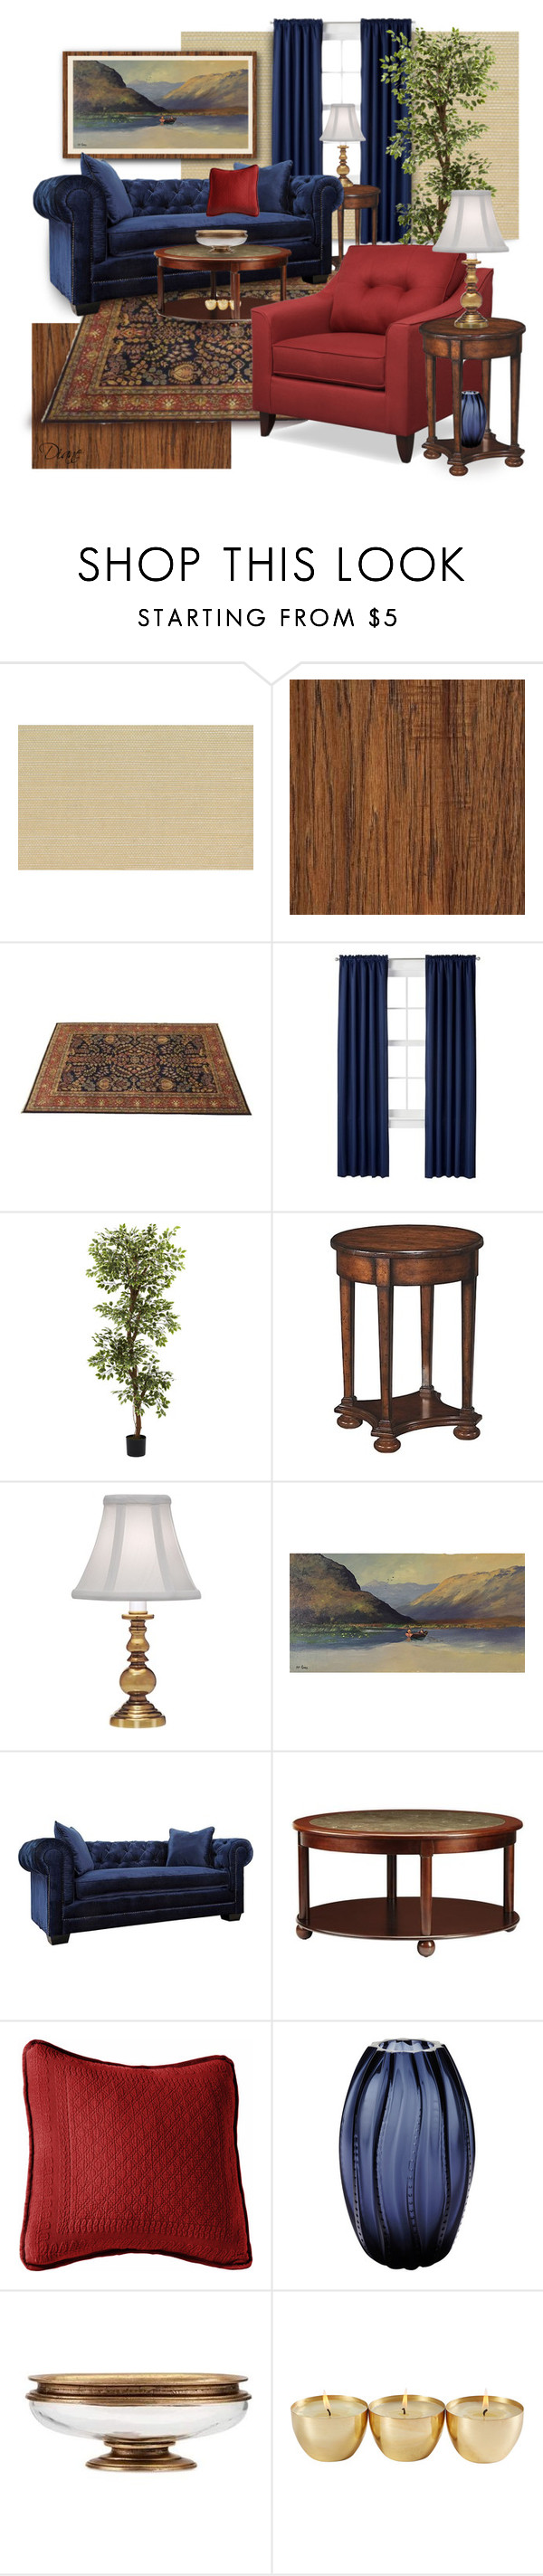 """Rich Colors"" by diane-hansen ❤ liked on Polyvore featuring interior, interiors, interior design, home, home decor, interior decorating, Seabrook, Room Essentials, Nearly Natural and Stiffel"